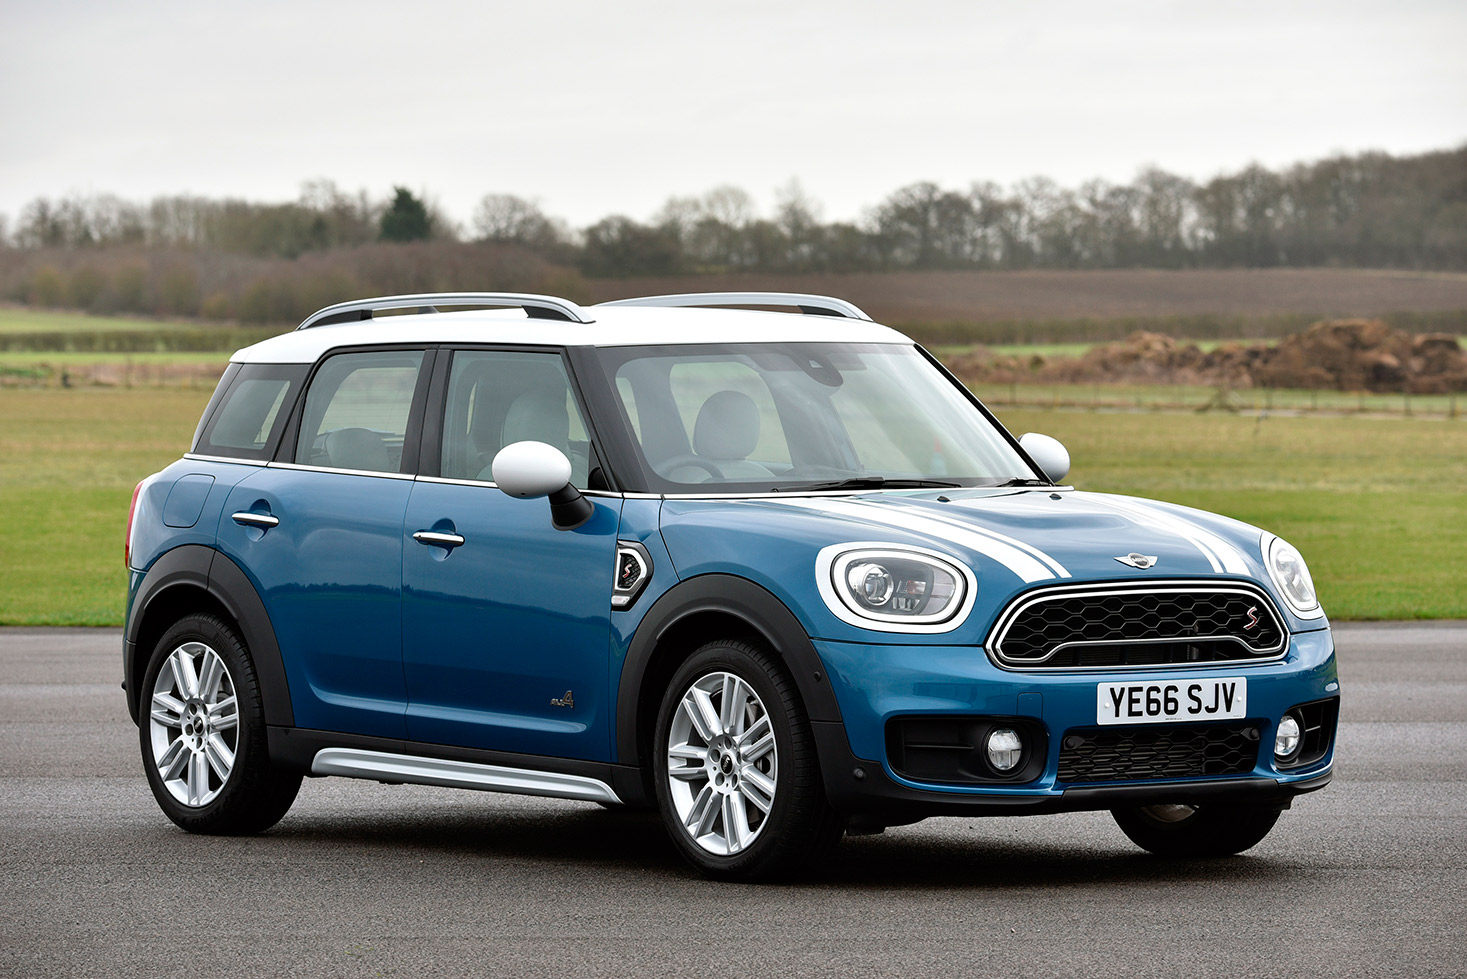 mini-countryman-309.jpg